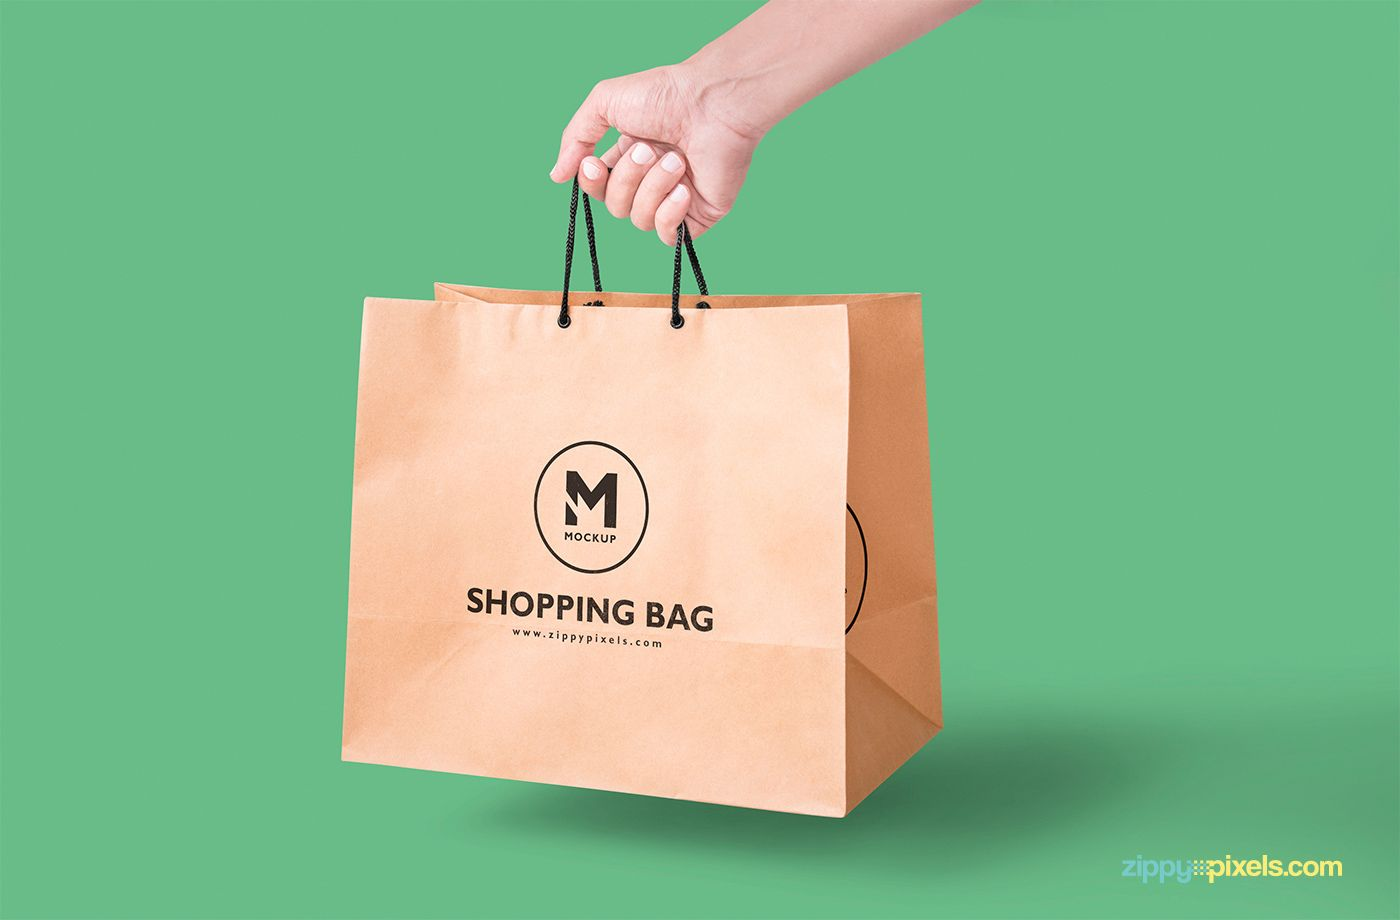 Download Free Handheld Paper Bag Mockup On Behance Bag Mockup Mockup Free Psd Mockup Free Psd Download